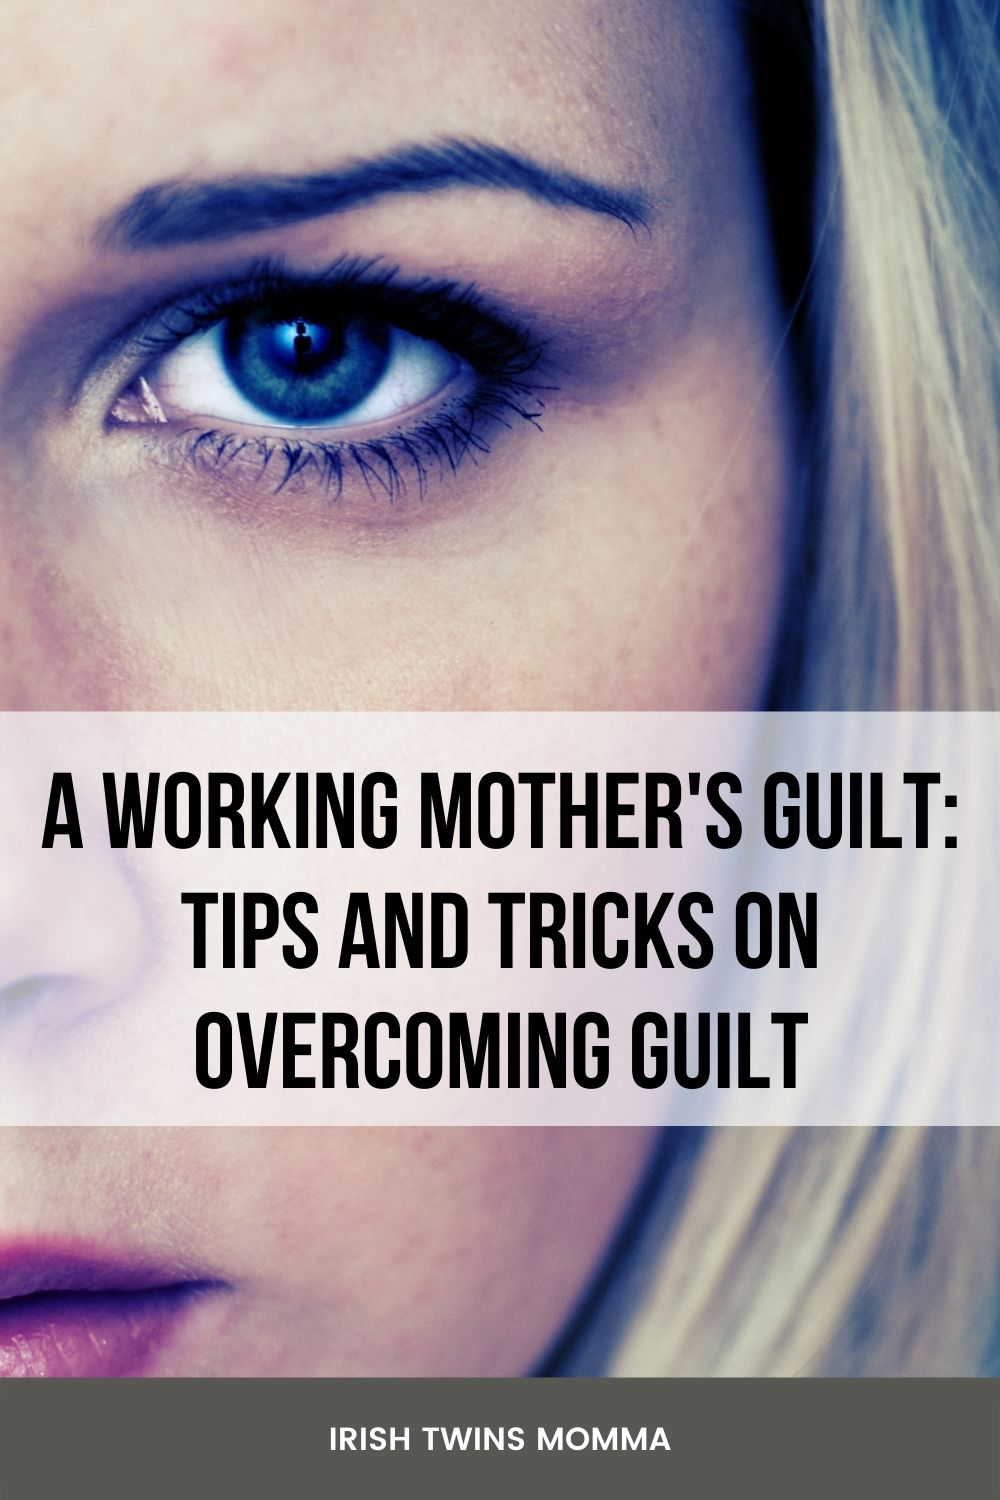 A Working Mother's Guilt: Tips and Tricks on Overcoming Guilt